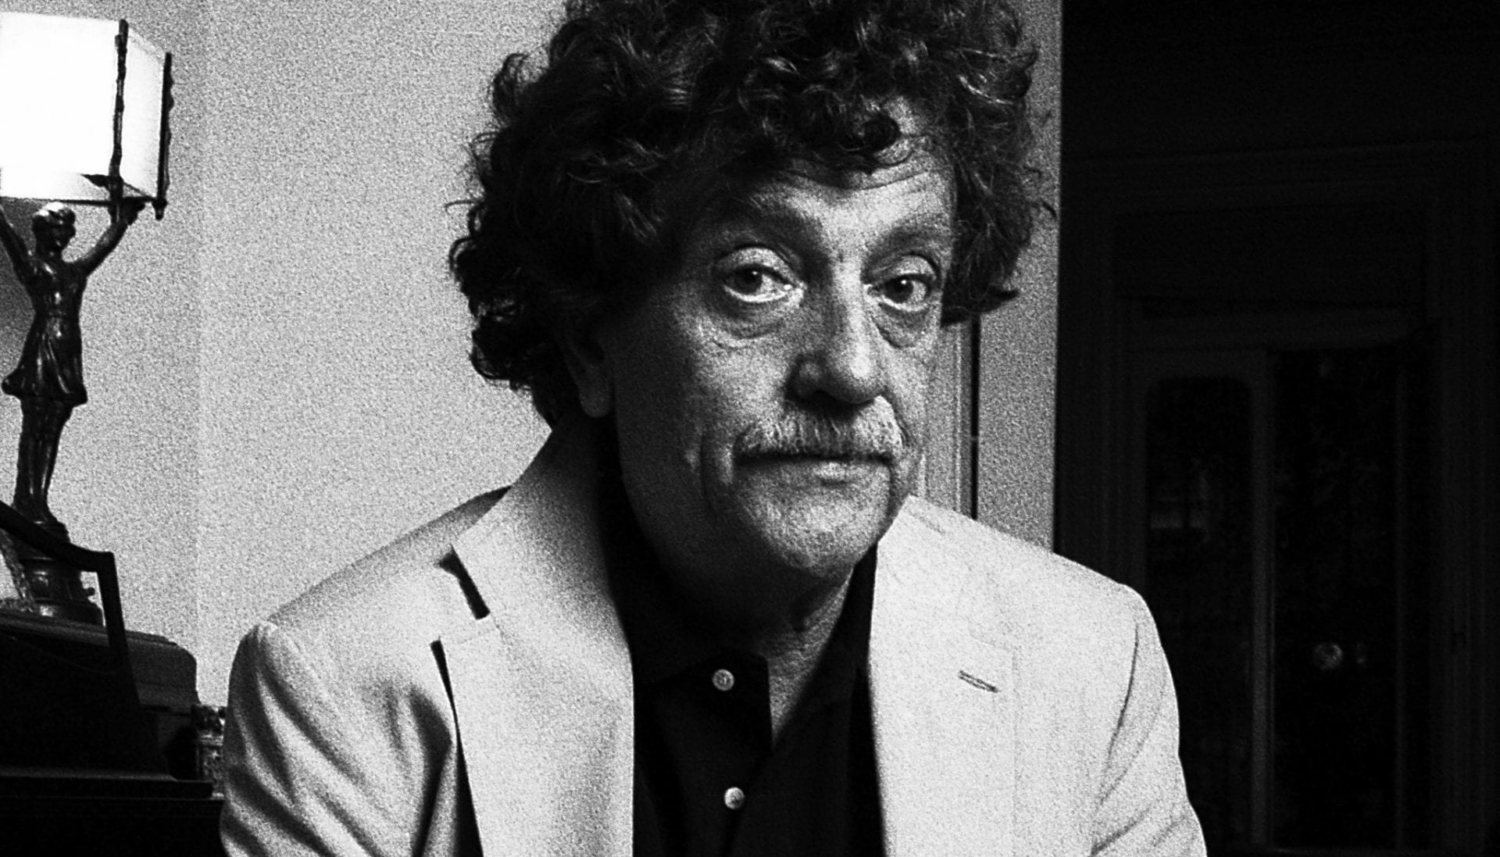 a biography of kurt vonnegut jr an american writer The first authoritative biography of kurt vonnegut jr, a writer who changed the conversation of american literaturein 2006, charles shields reached out to kurt vonnegut in a letter first edition 2011 designed by meryl sussman levavi printed in the united states of america 1 3 5 7 9 10 8 6 4 2.